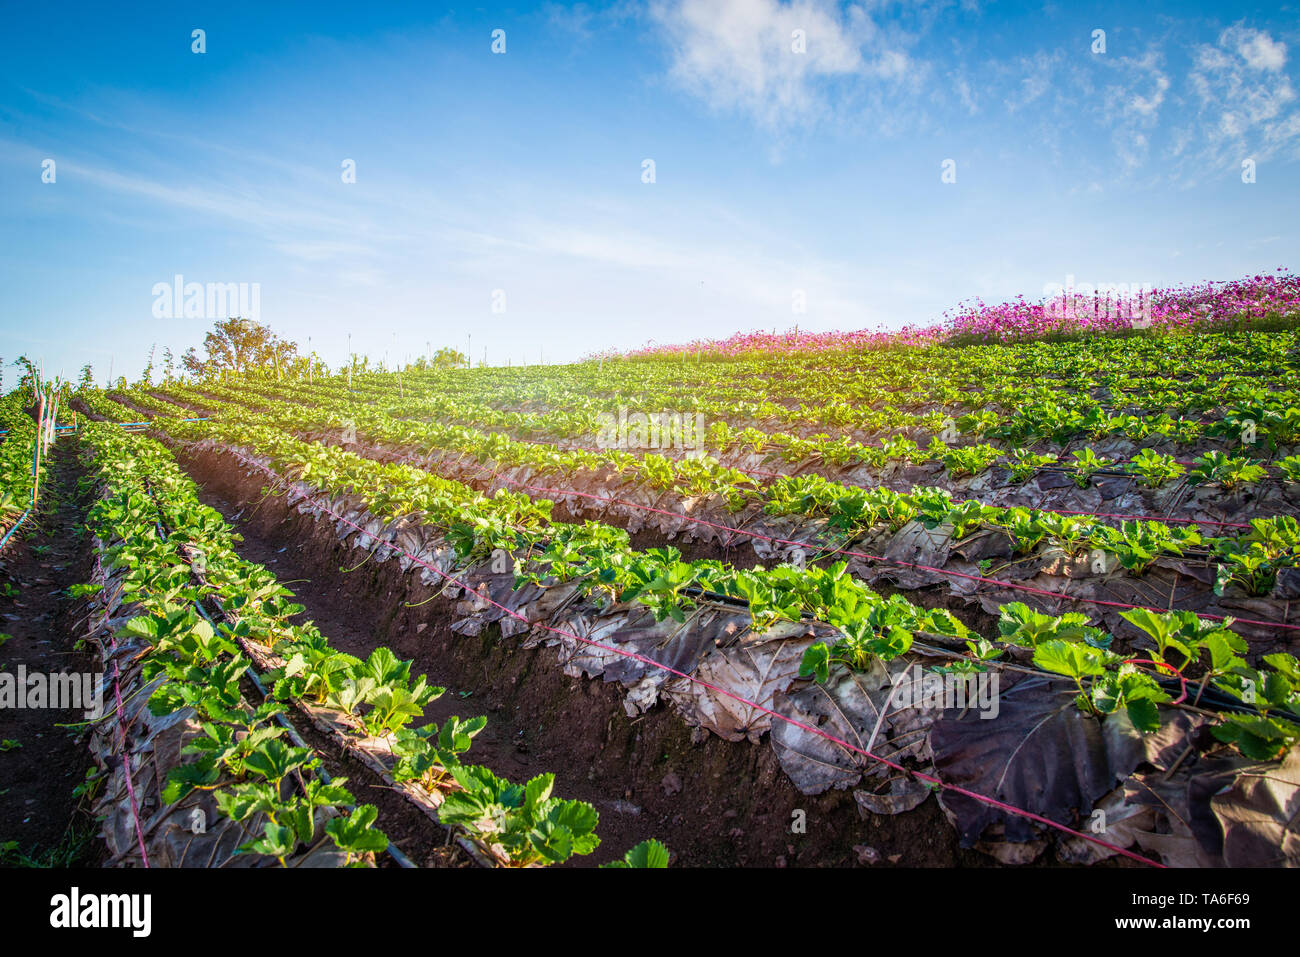 strawberry plant farm on hill / fresh strawberries field plantation growing landscape garden fruit in row on natural with leaves green agriculture mou - Stock Image